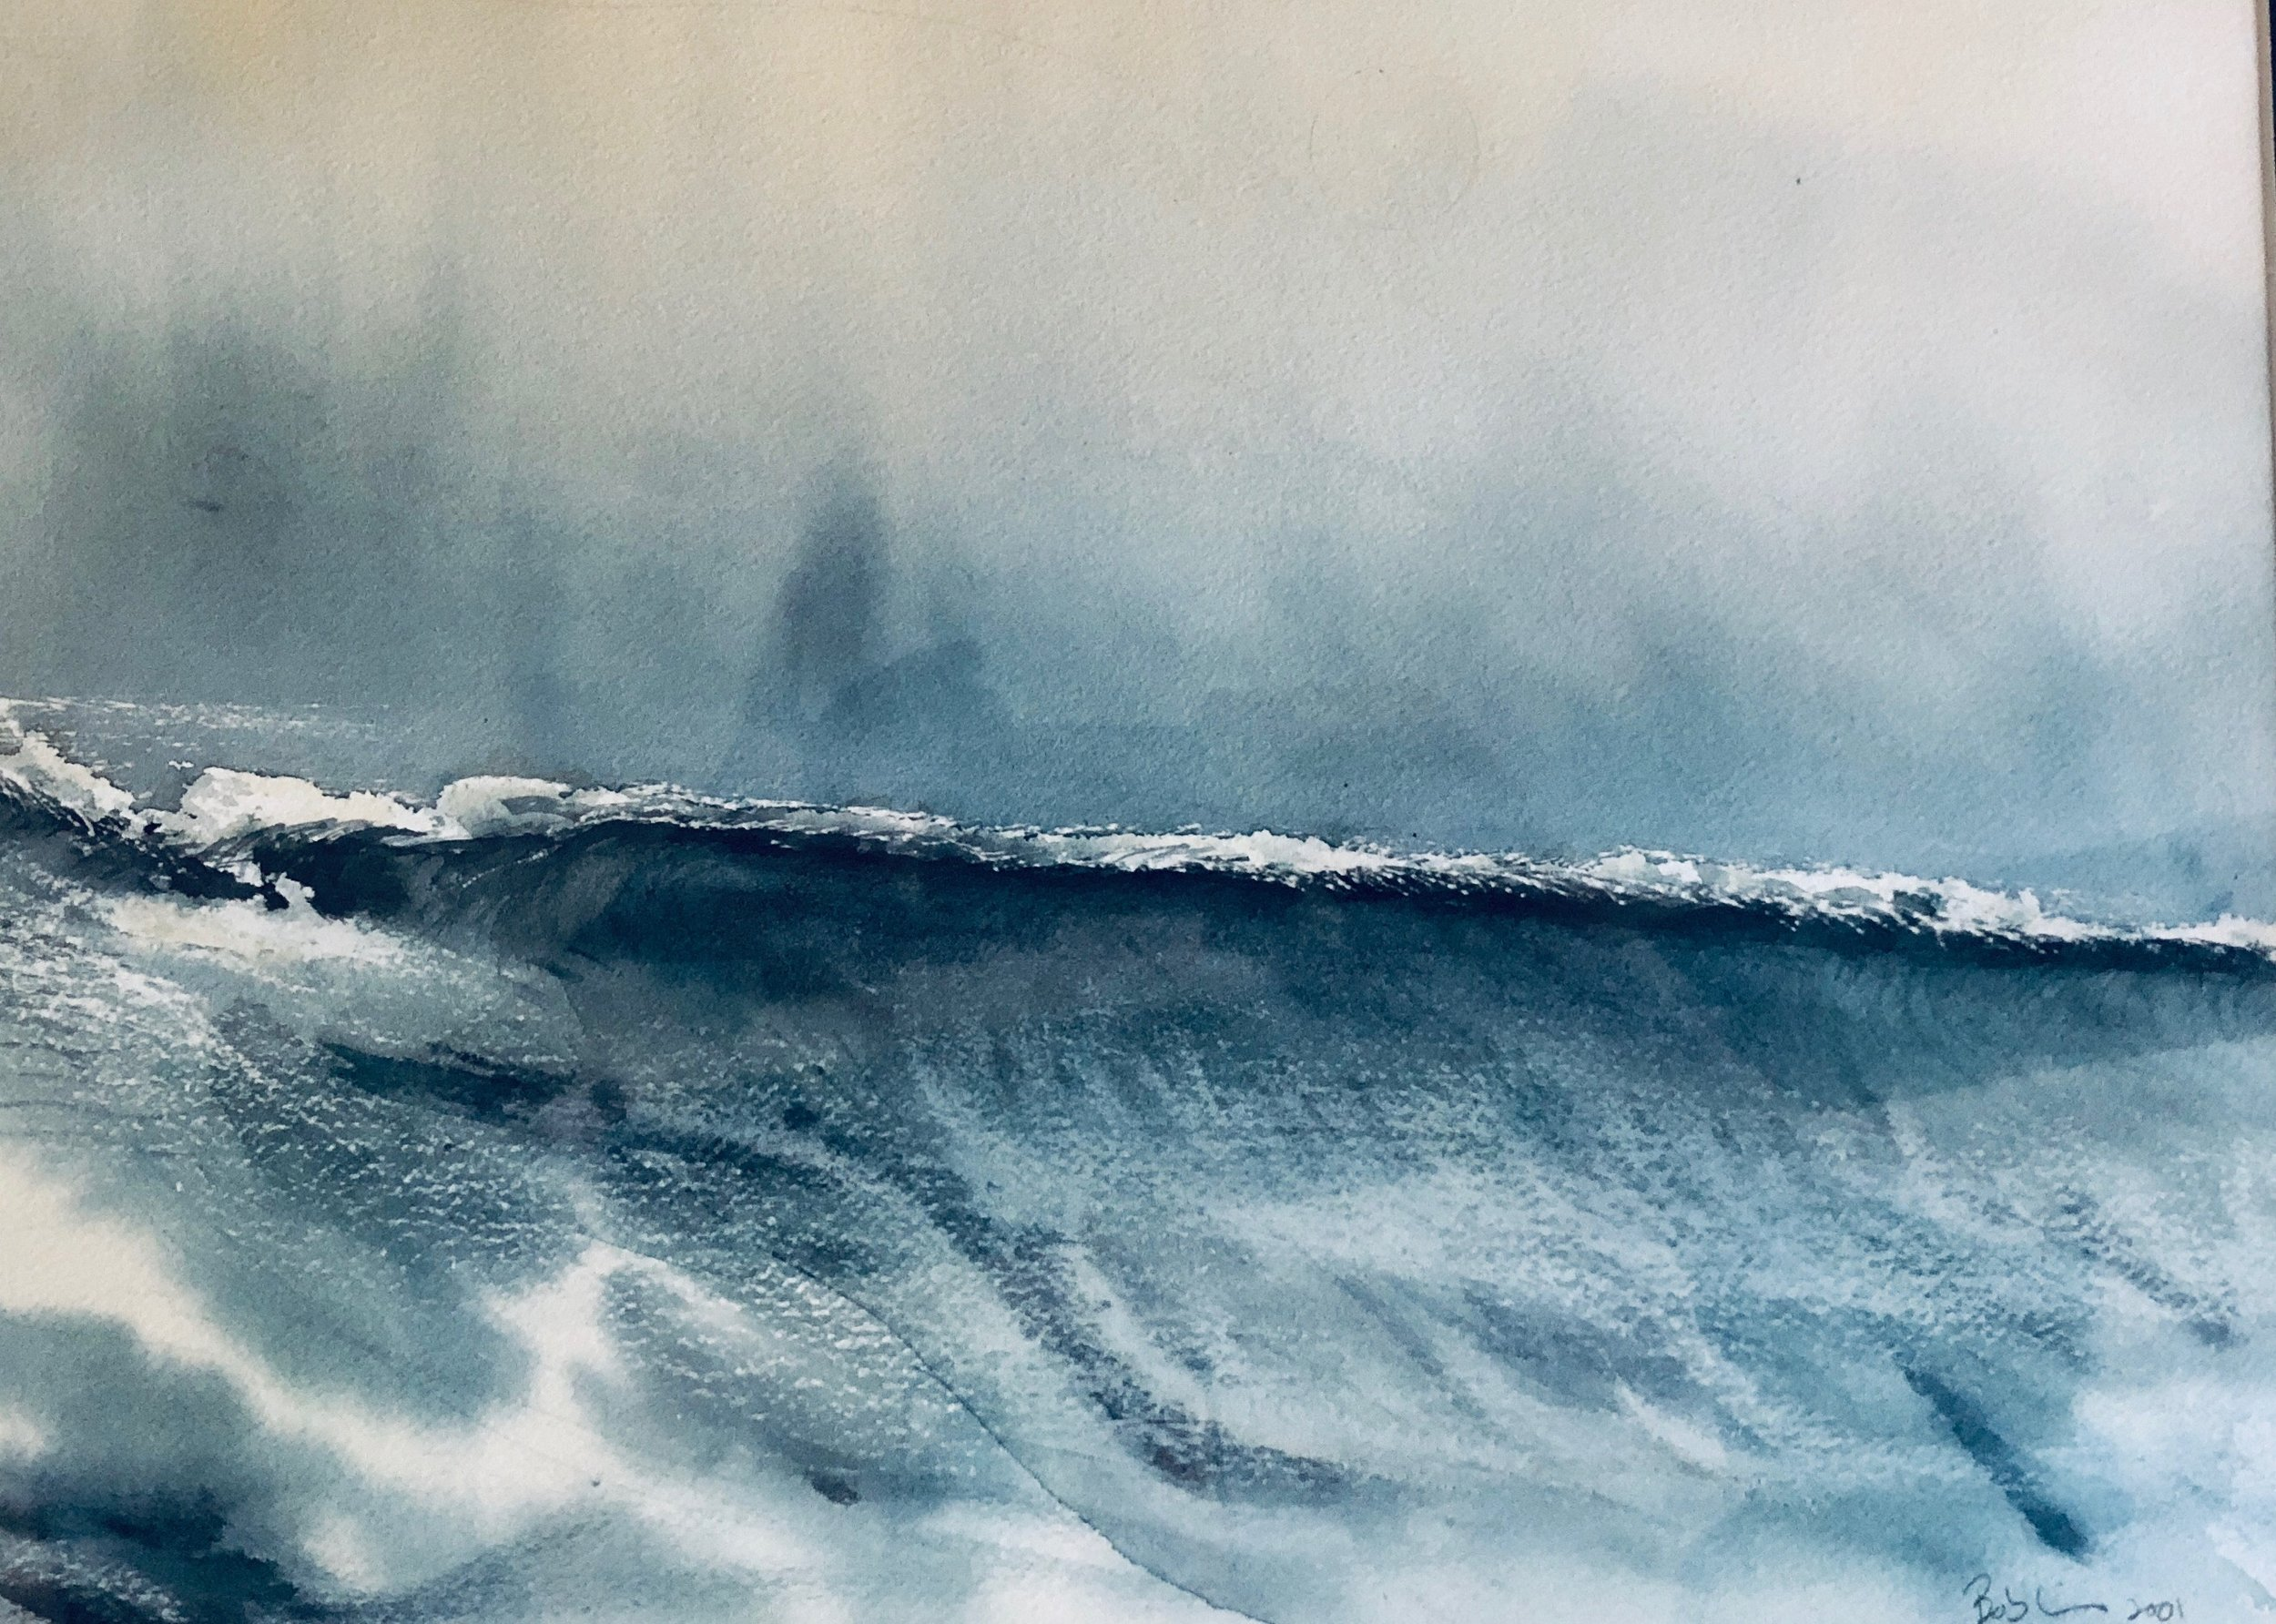 This is a watercolor i did in 2001 from a memory of a line of squalls off of Cuba that slammed into the 36 ketch I crewed on, for delivery to Ocho Rios, Jamaica.